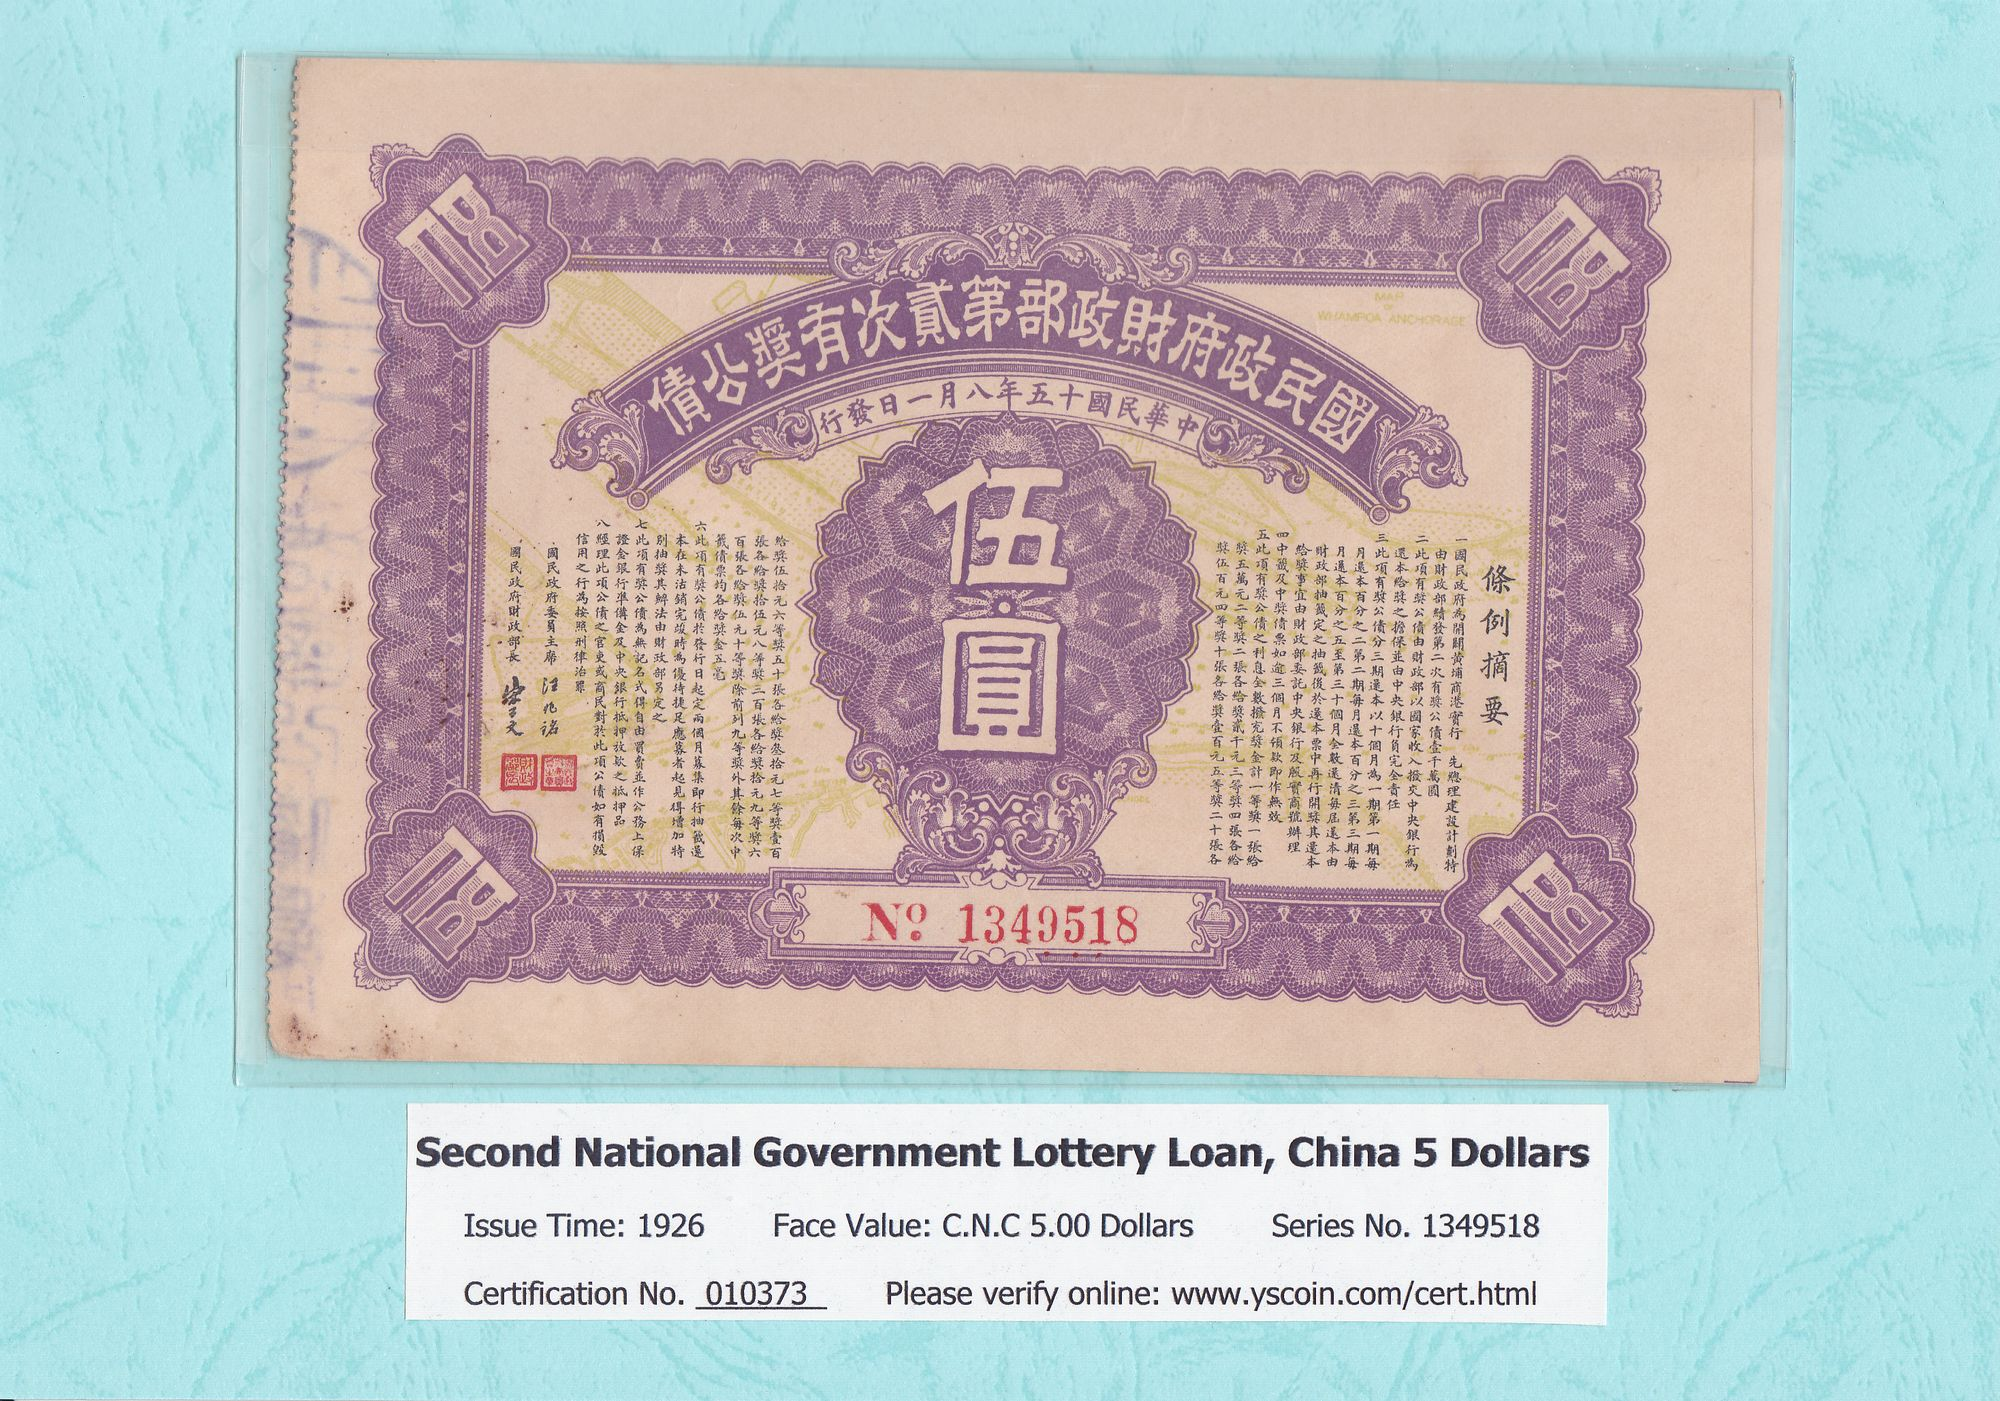 010373, Second National Government Lottery Loan, China 5 Dollars